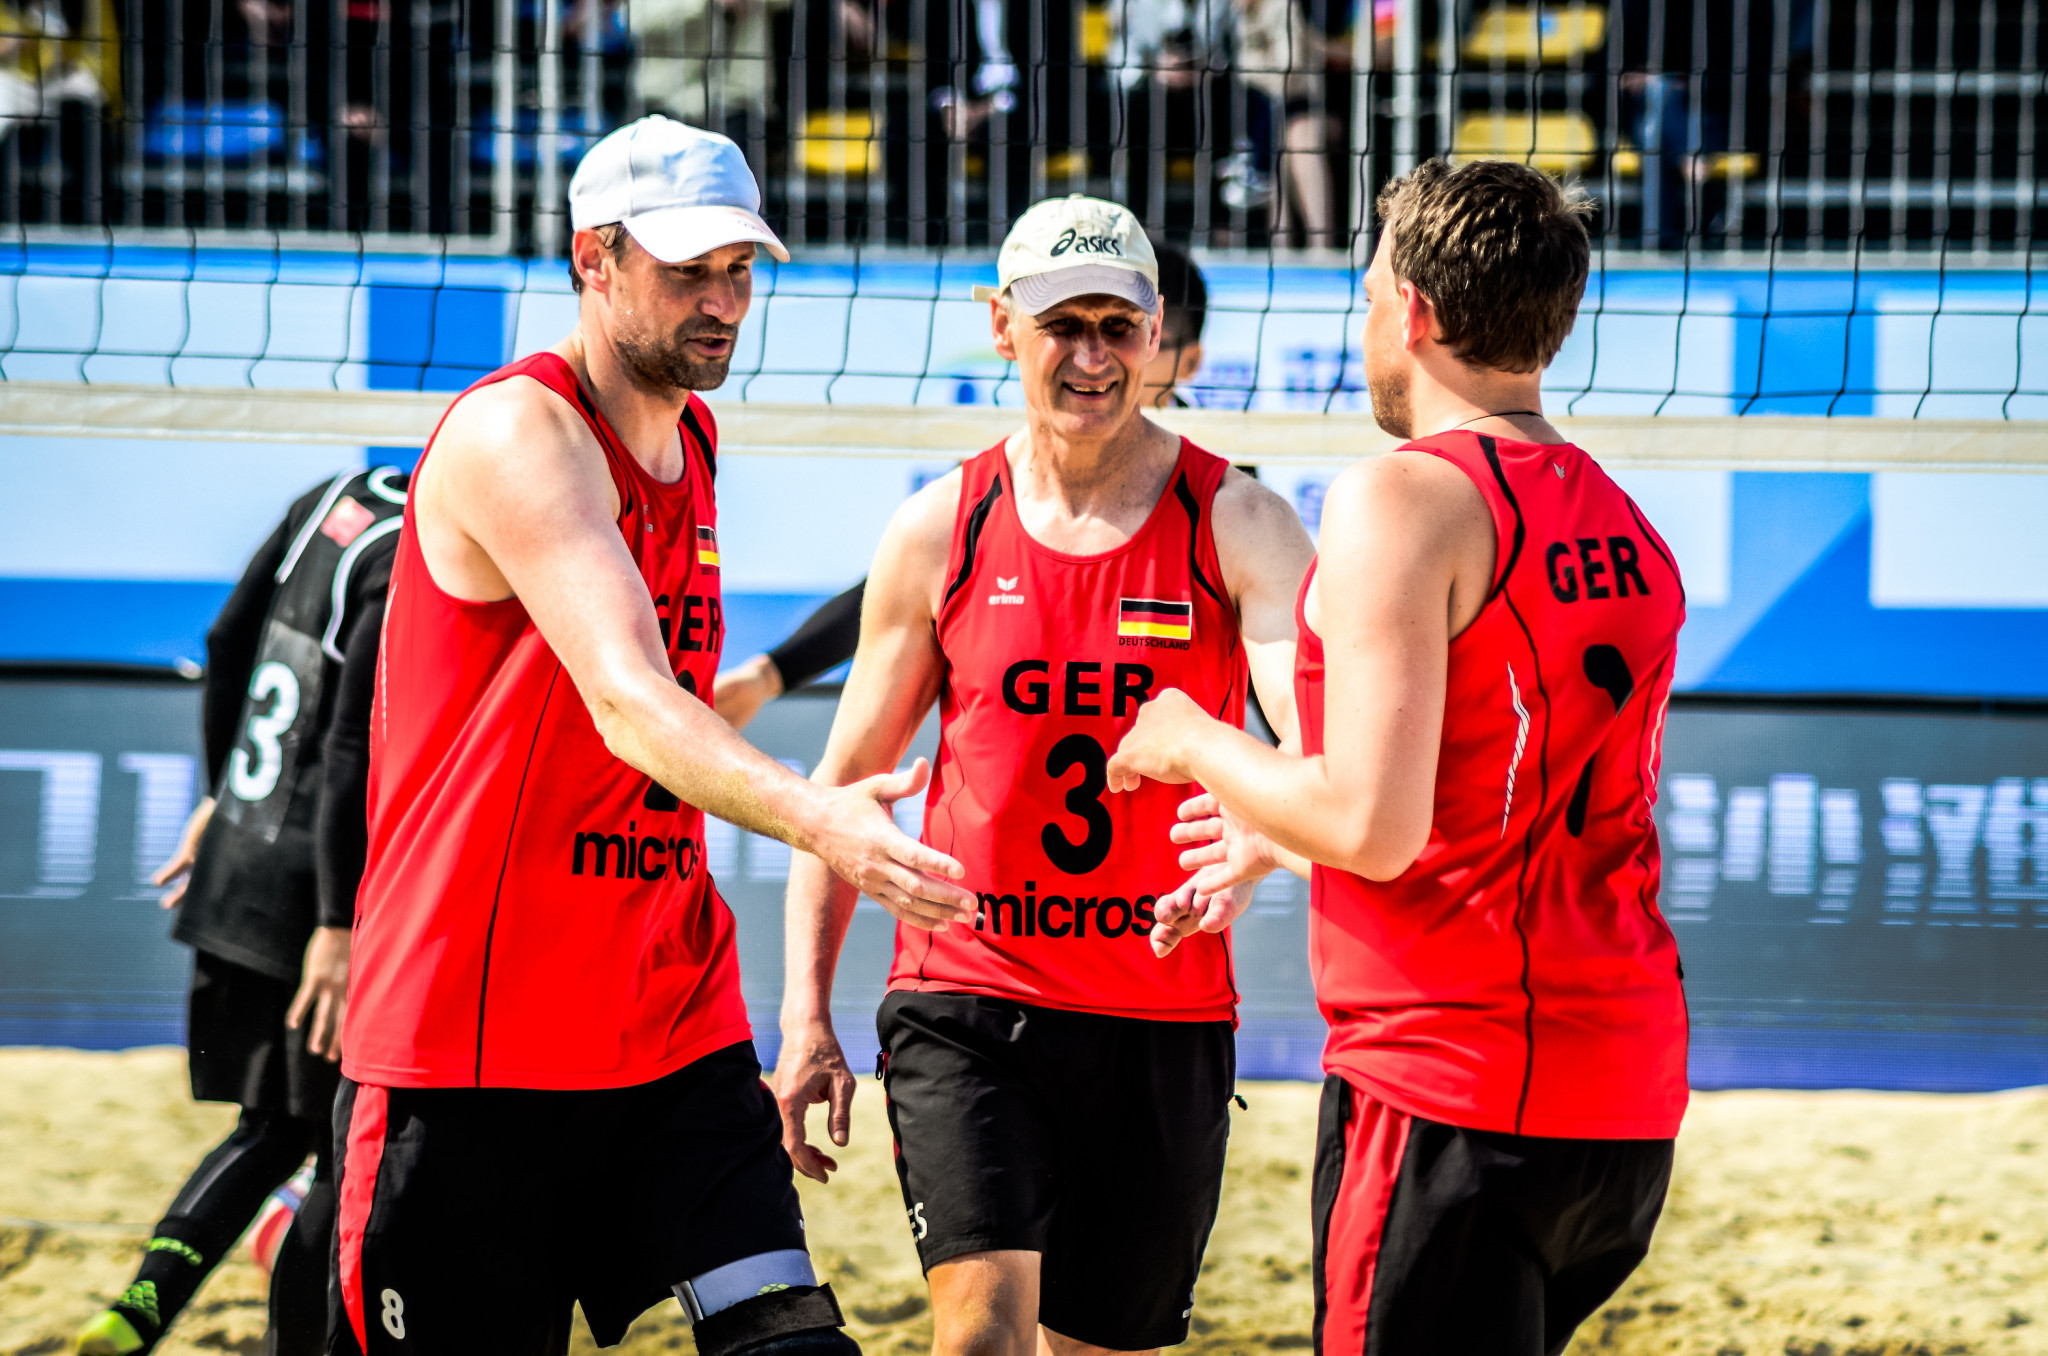 Germany and Poland make strong starts to Beach ParaVolley Standing World Series